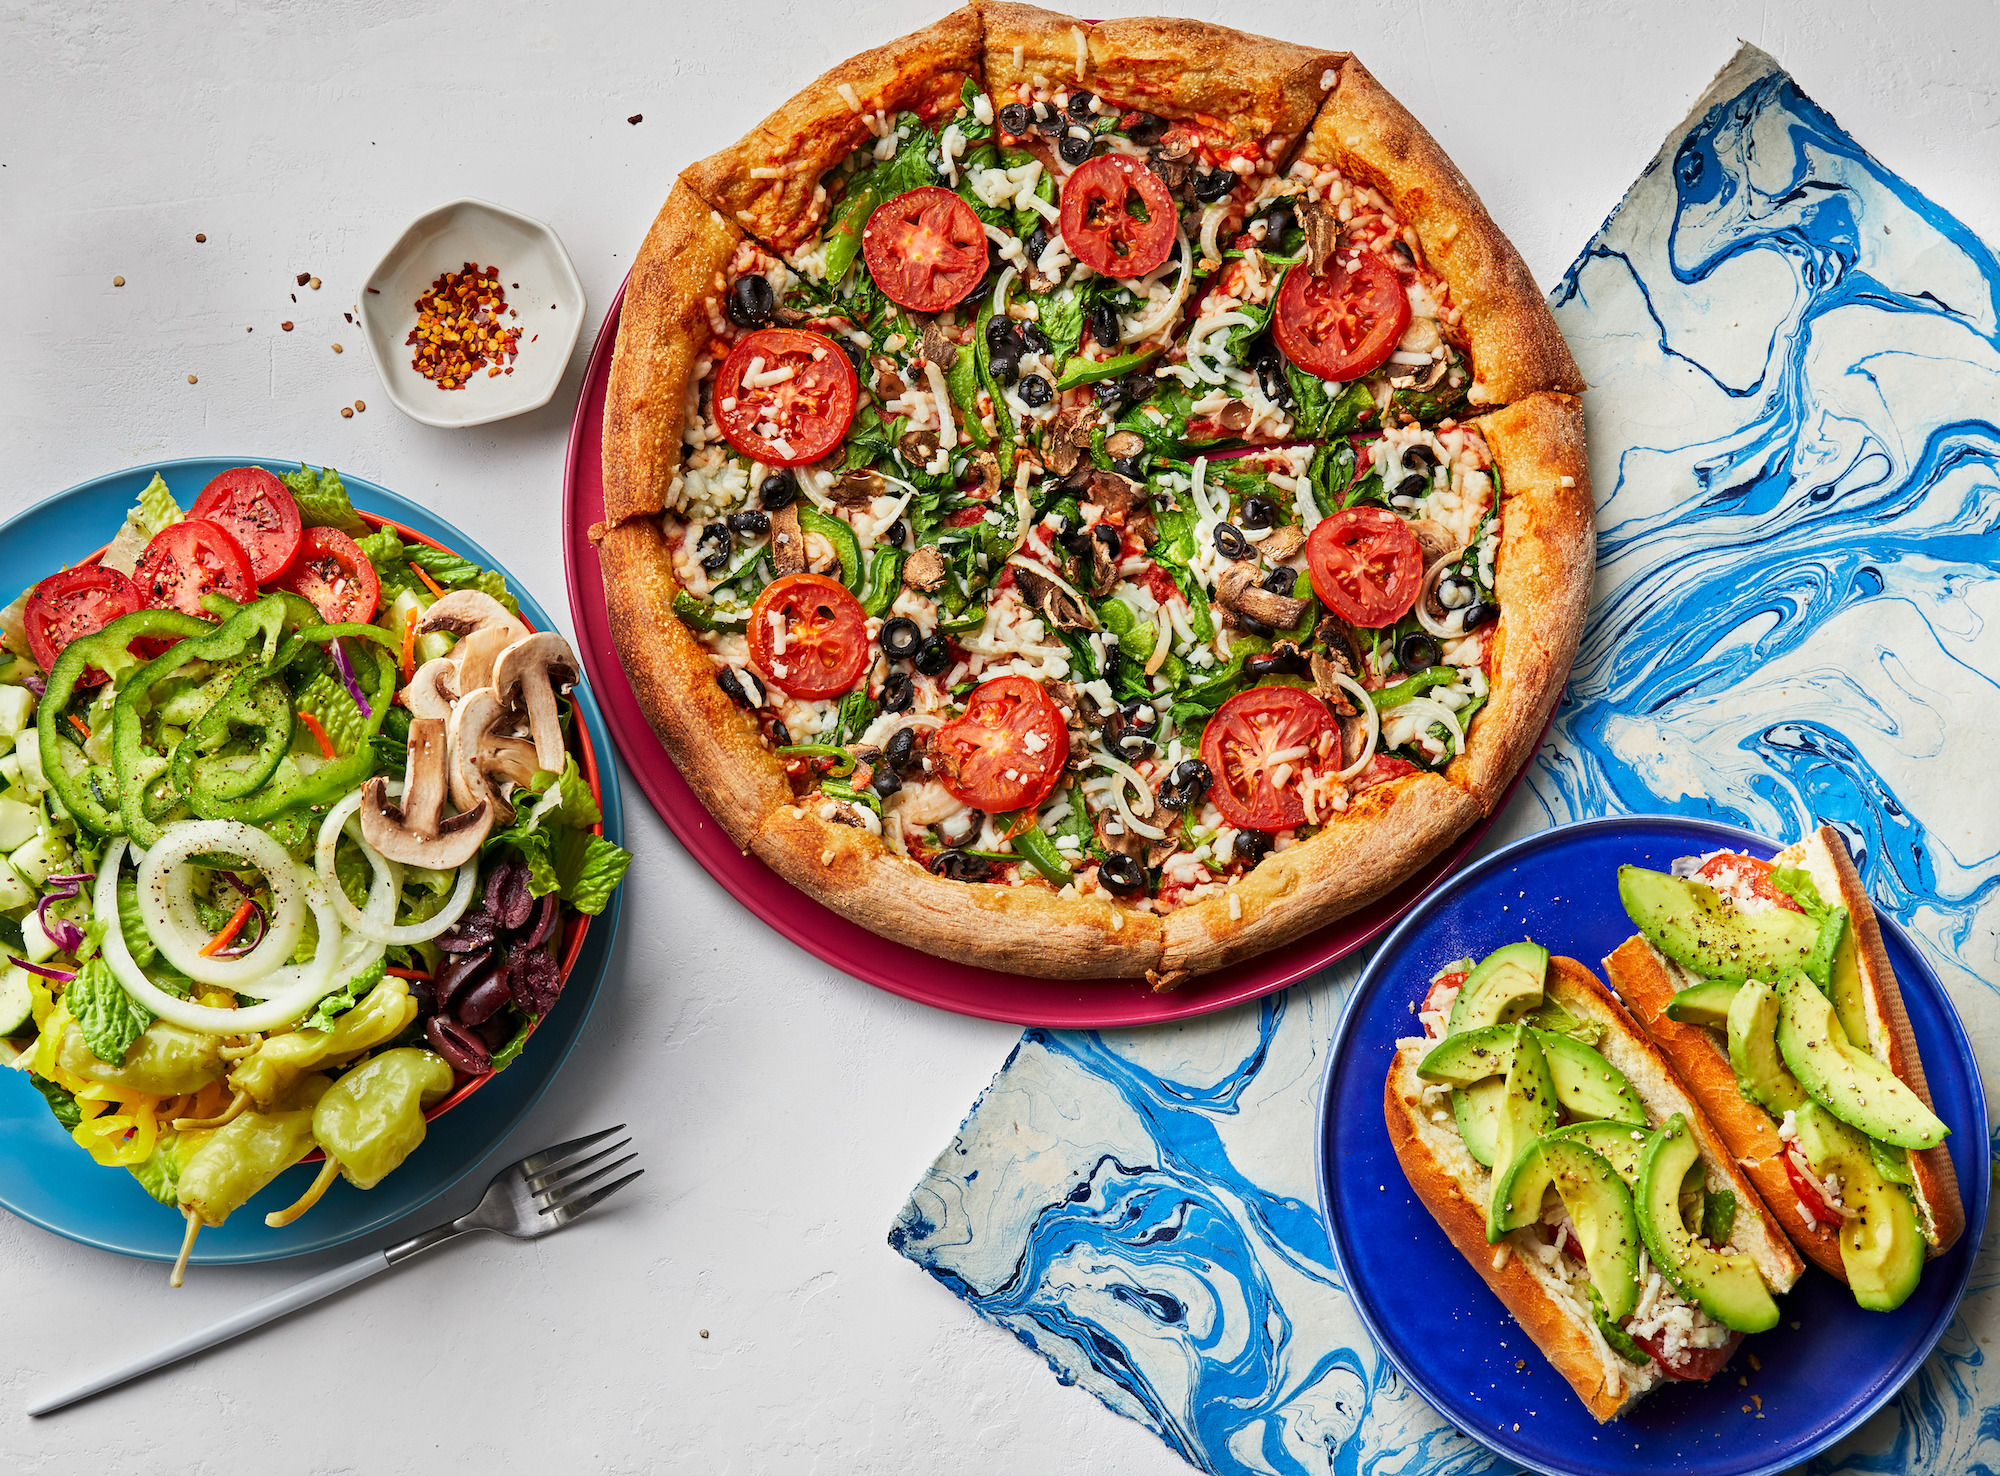 Mellow Mushroom Offers Gluten Free, Vegan and Keto-Friendly Menu Items to Start Off the New Year